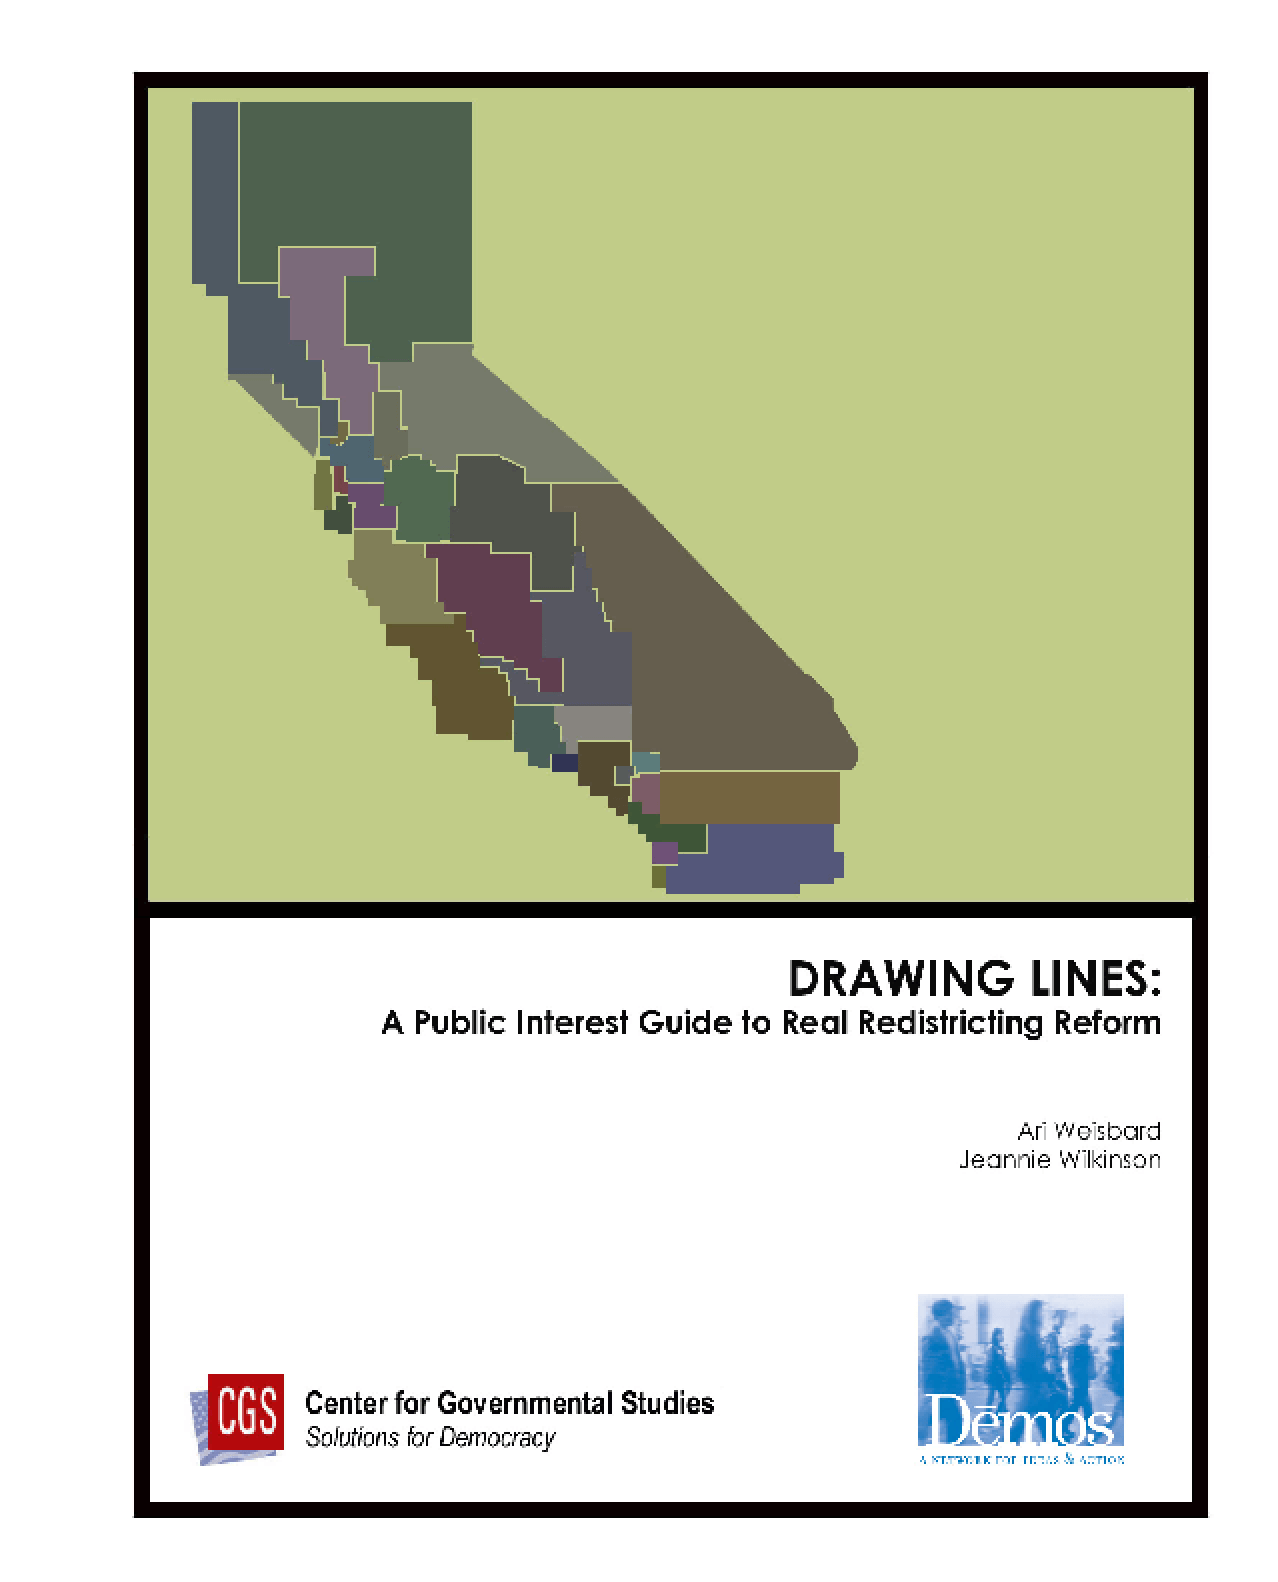 Drawing Lines: A Public Interest Guide to Real Redistricting Reform